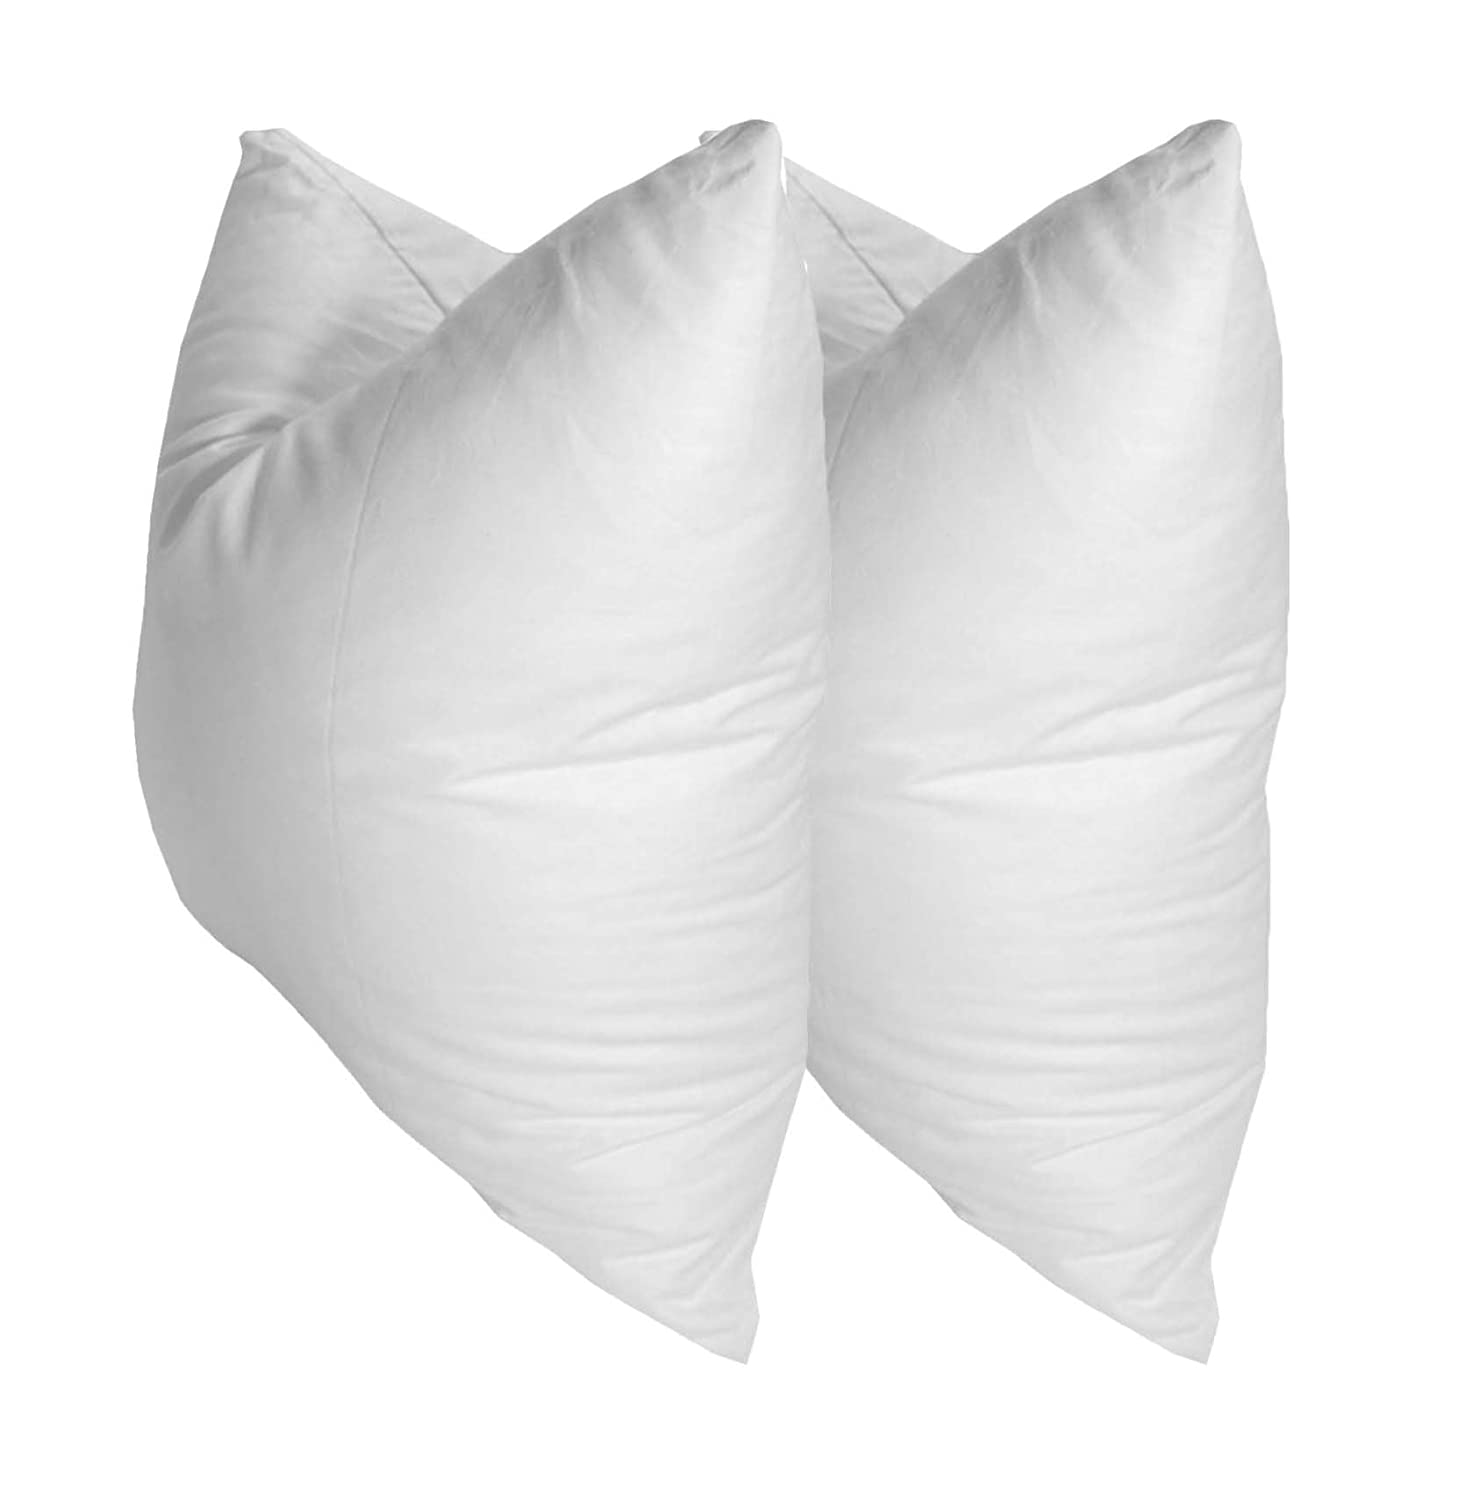 Pillowflex Set of 2 Synthetic Down Alternative Pillow Inserts for Shams (12 Inch by 18 Inch)